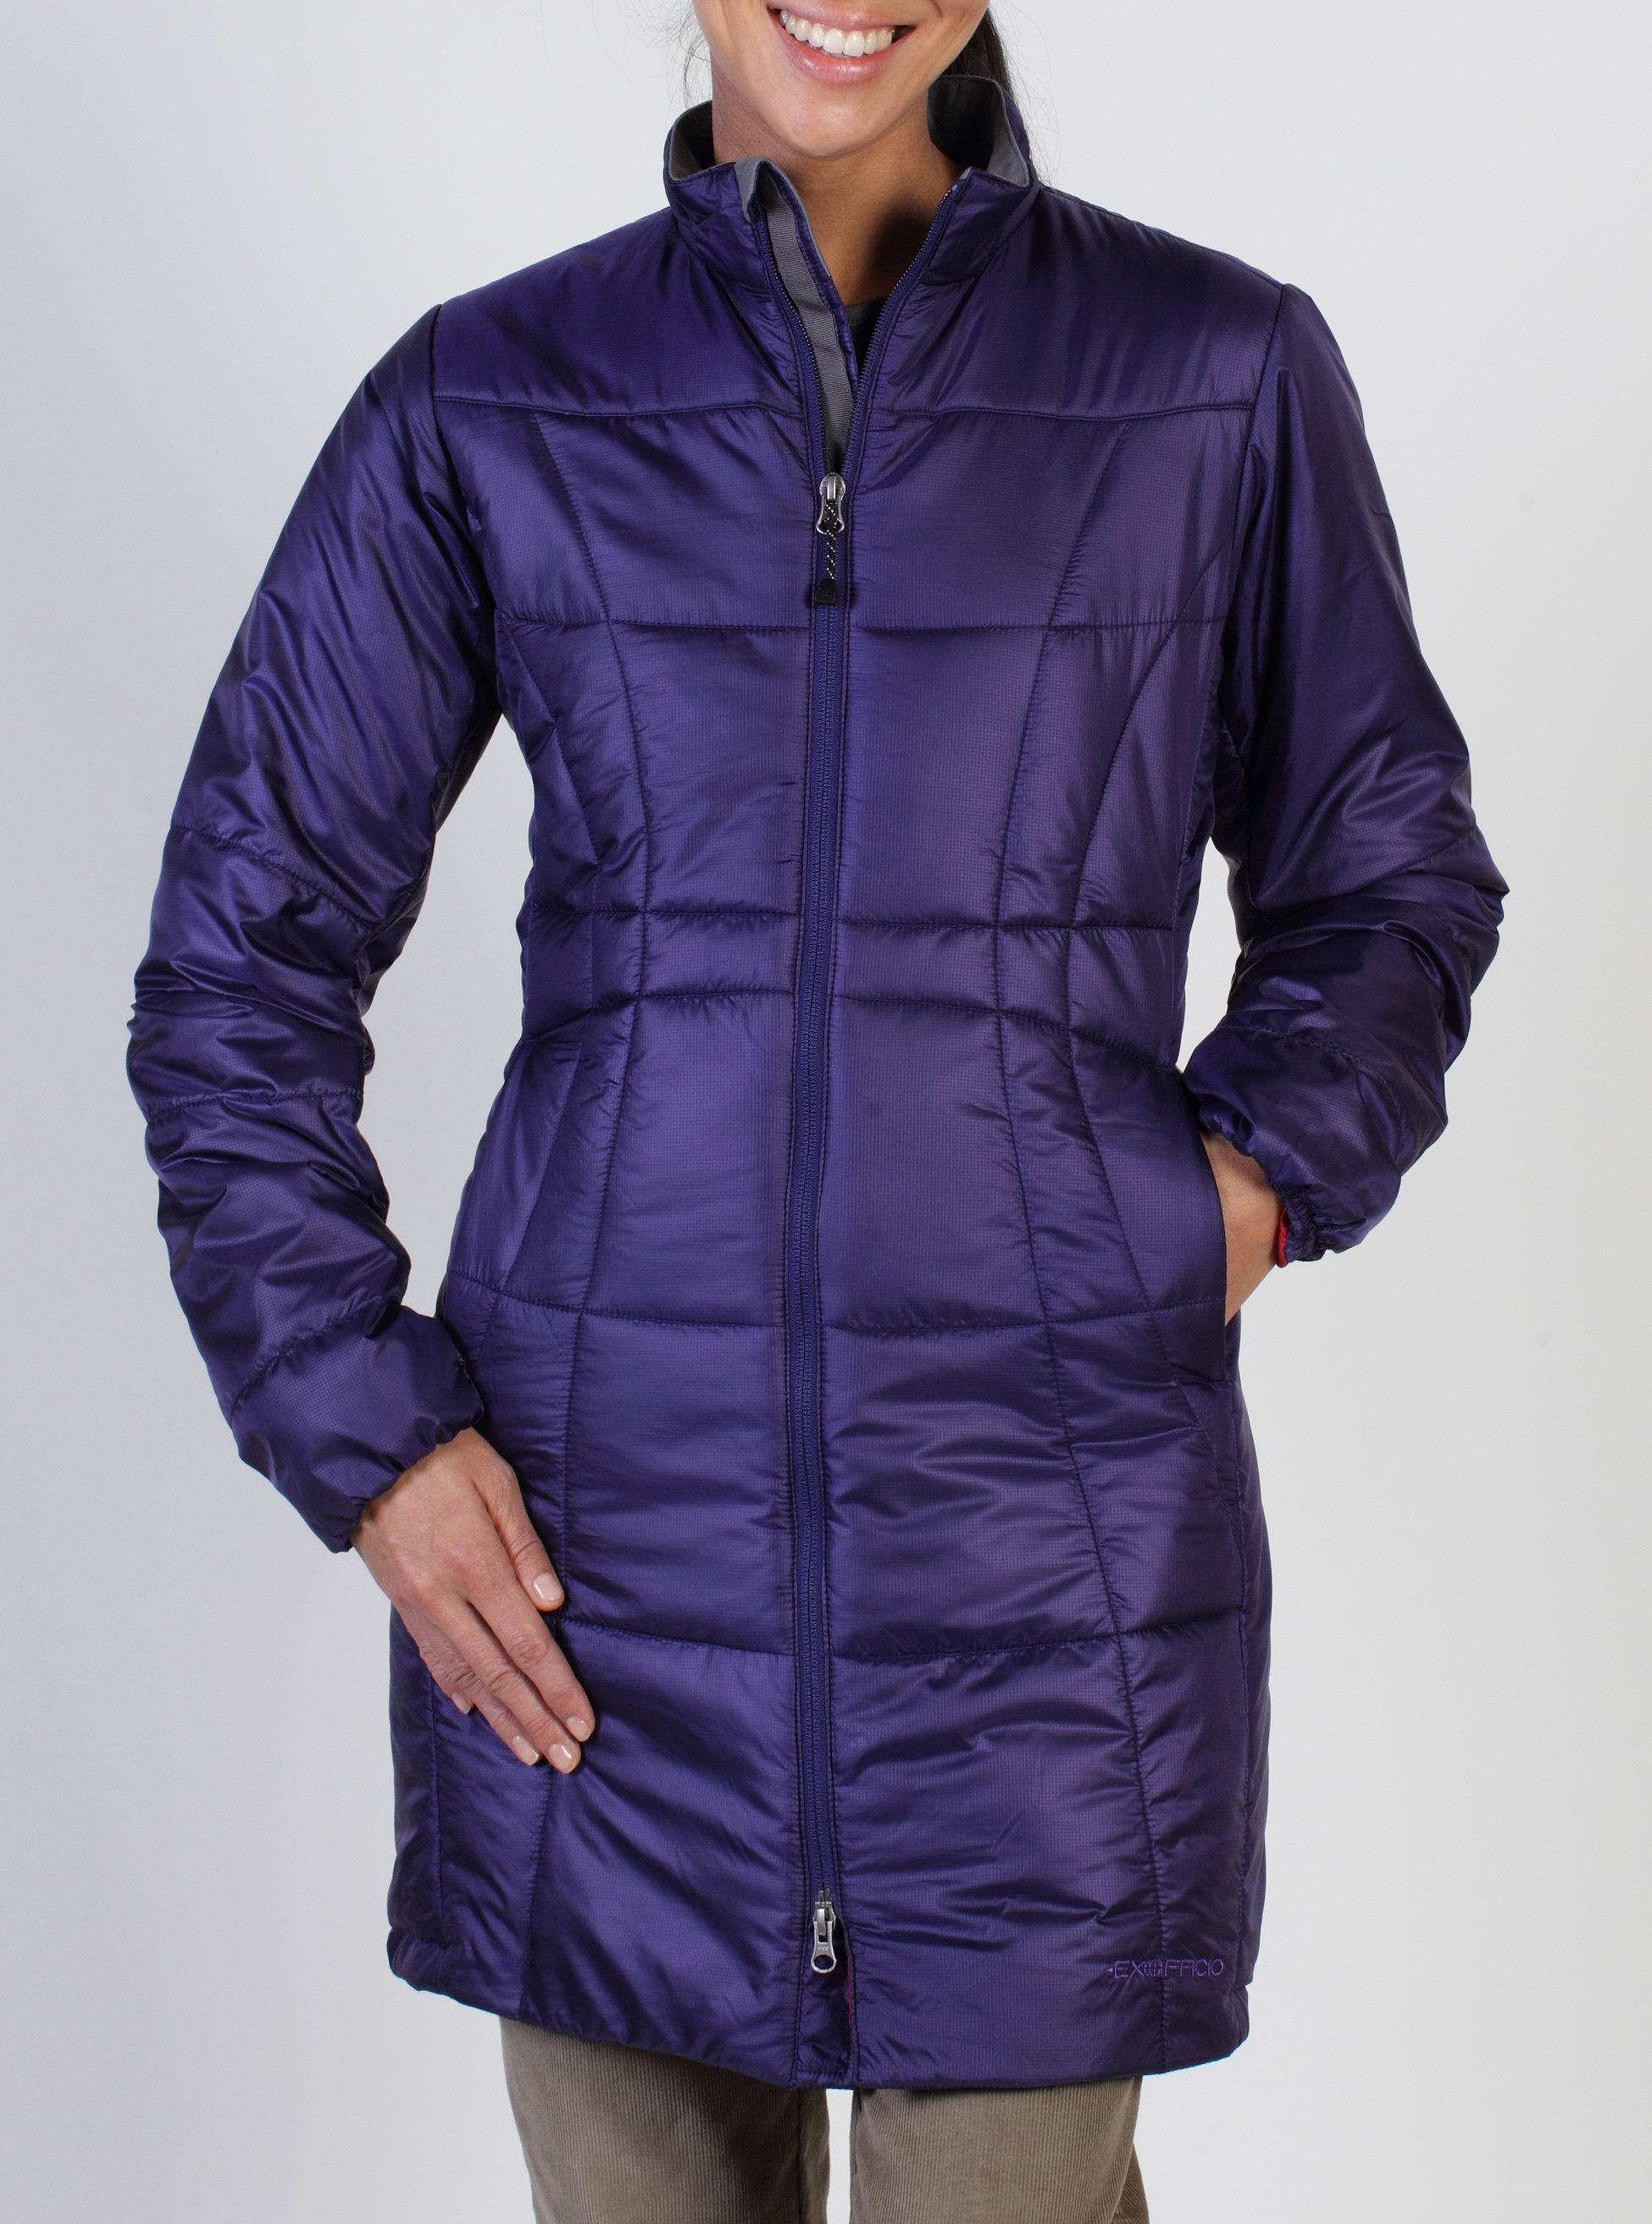 Women's Storm Logic Coat